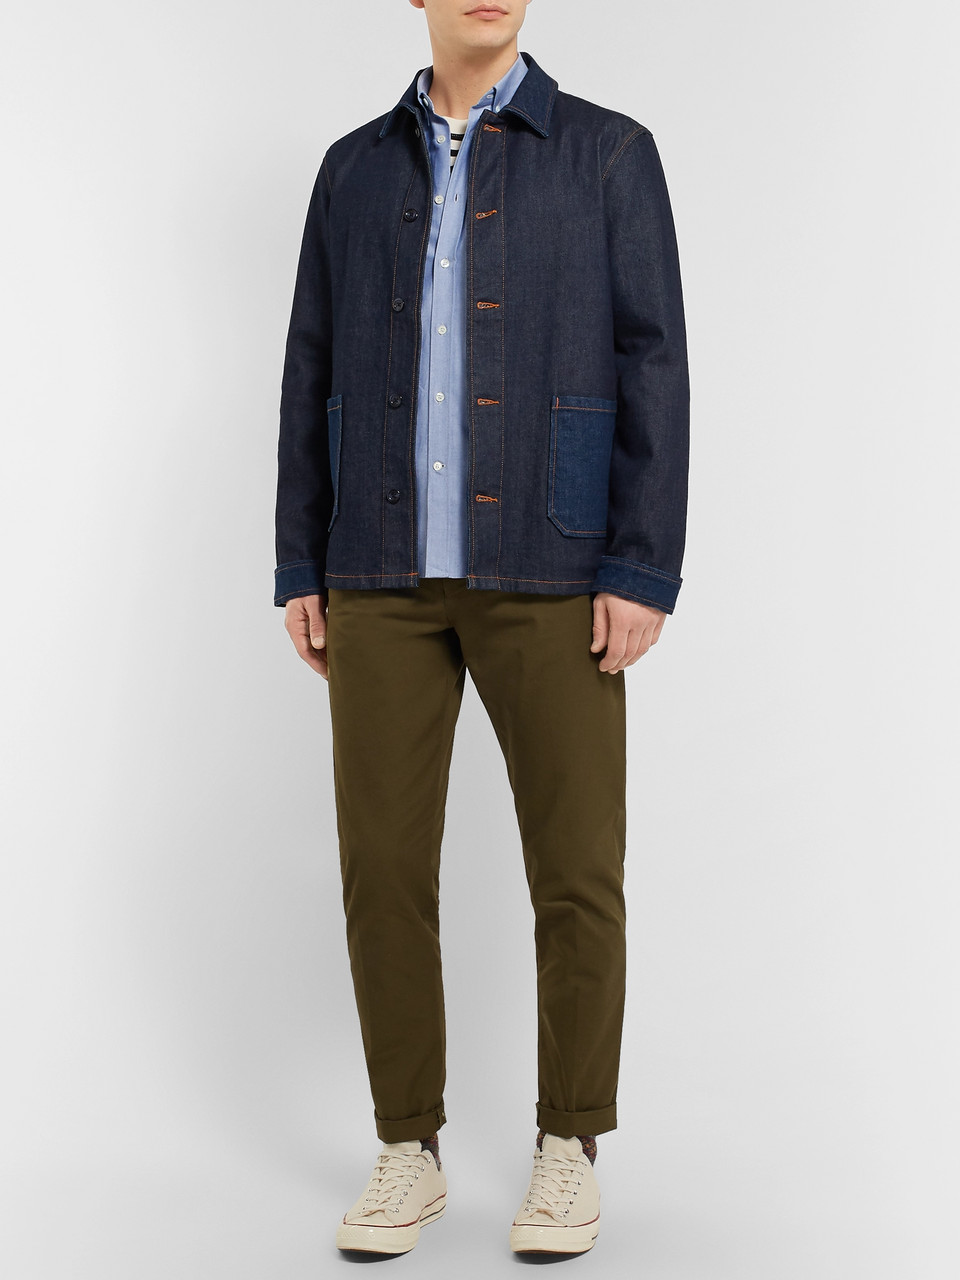 Maison Kitsuné Button-Down Collar Logo-Embroidered Cotton Oxford Shirt